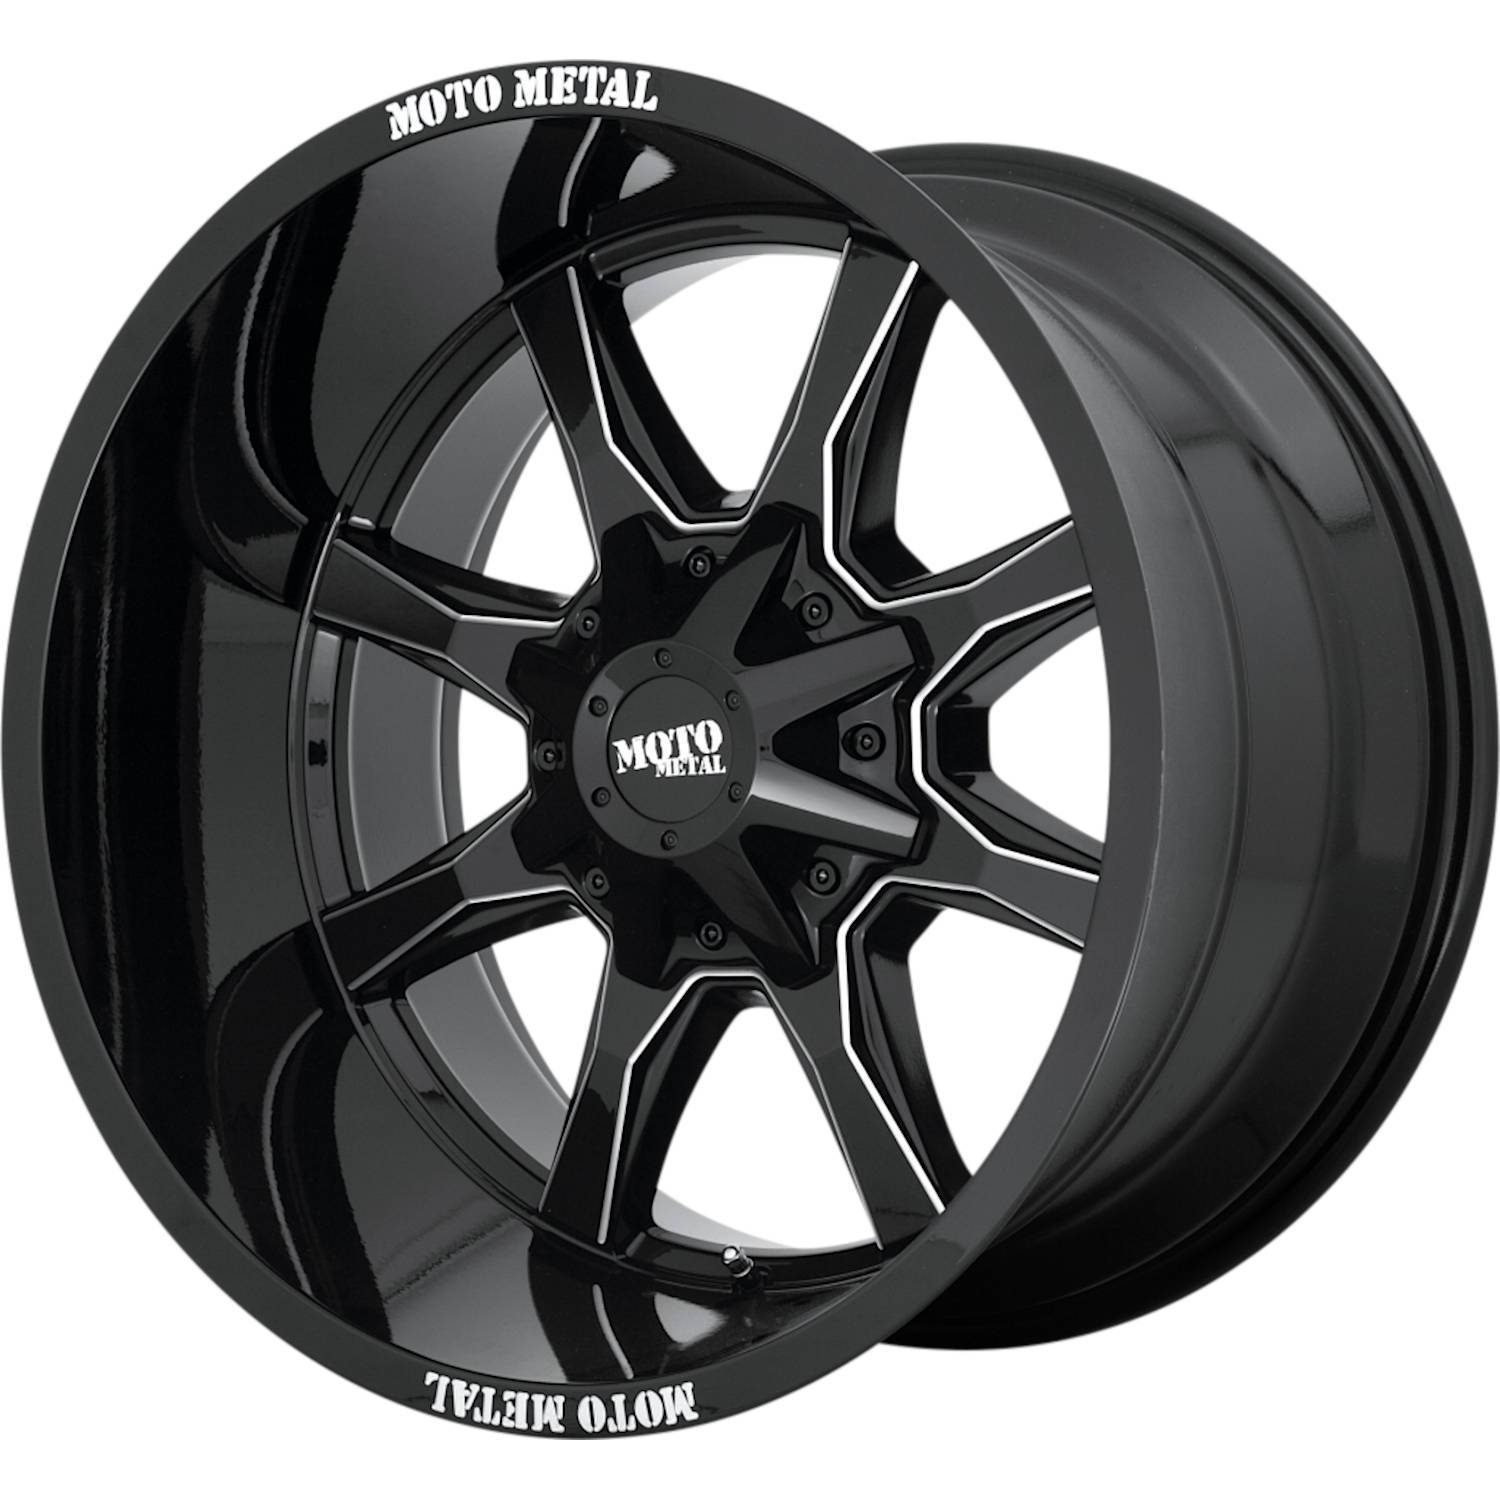 Moto Metal MO970 20x10 -18 5x127 (5x5)/5x139.7 (5x5.5) Gloss Black with Milled Spoke Edges